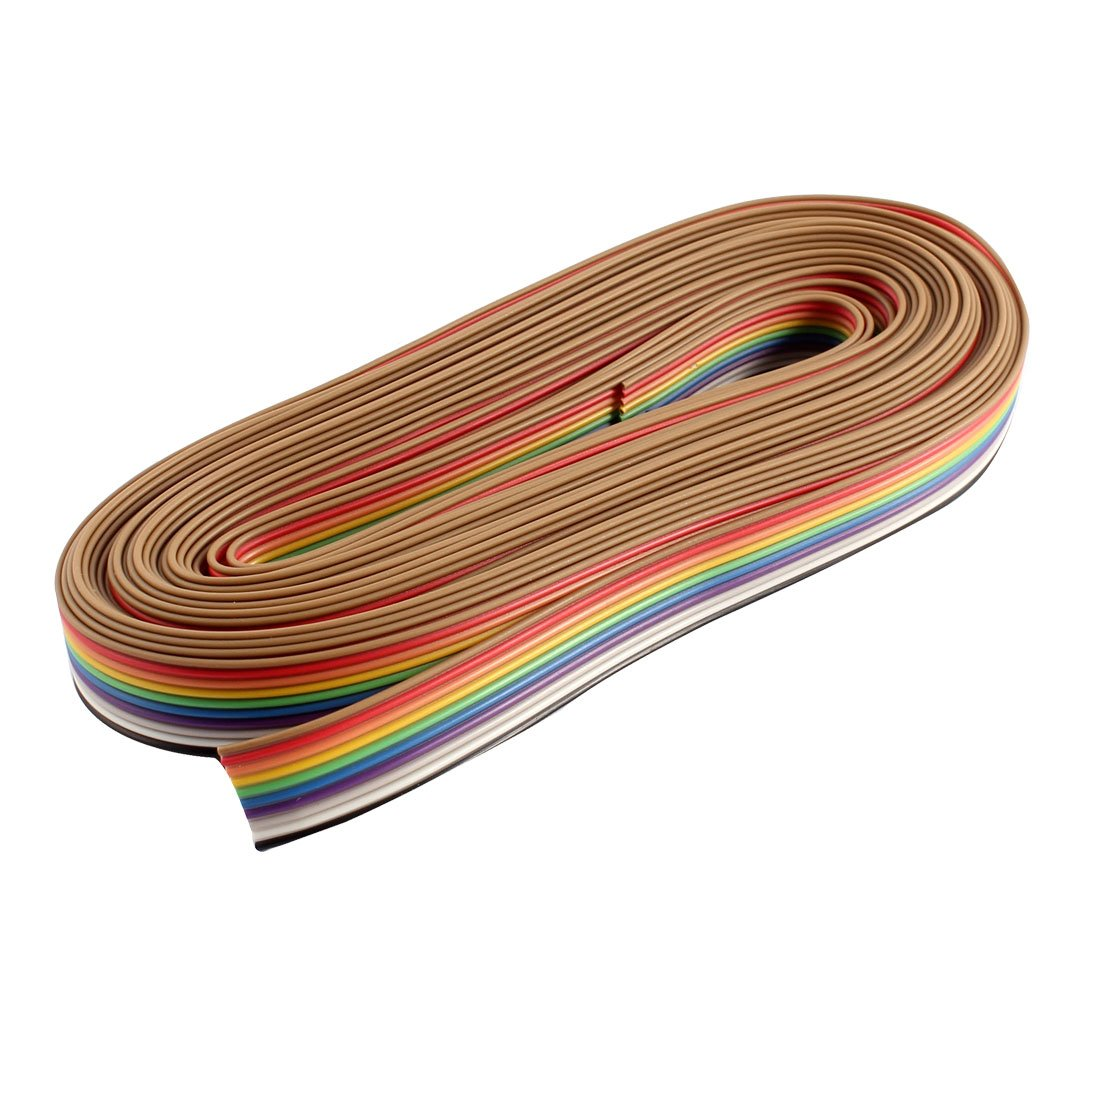 6M 10 Faç on 10 broche Rainbow Couleur Plat Ruban Cable IDC Câ ble 1.27mm DIY sourcing map a14102200ux0329